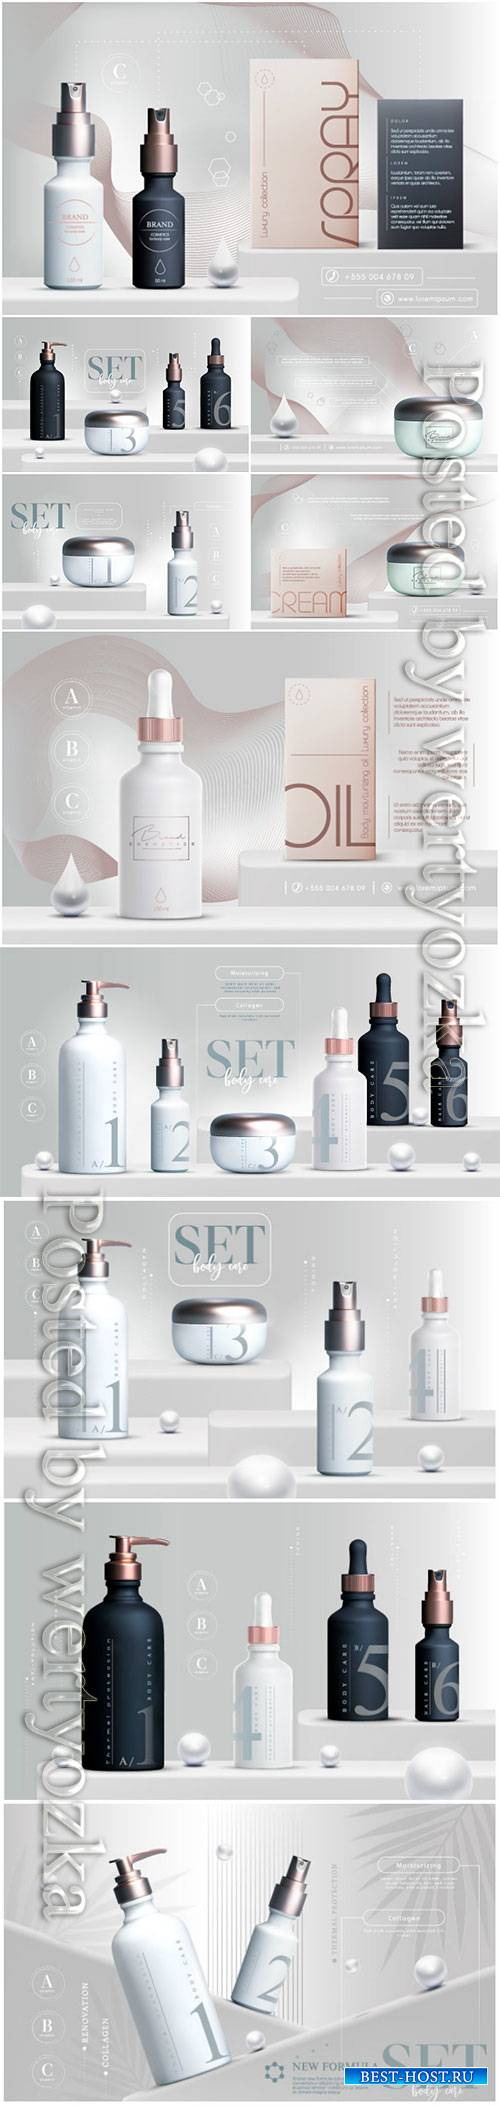 Vector 3D elegant cosmetic products set vector illustration